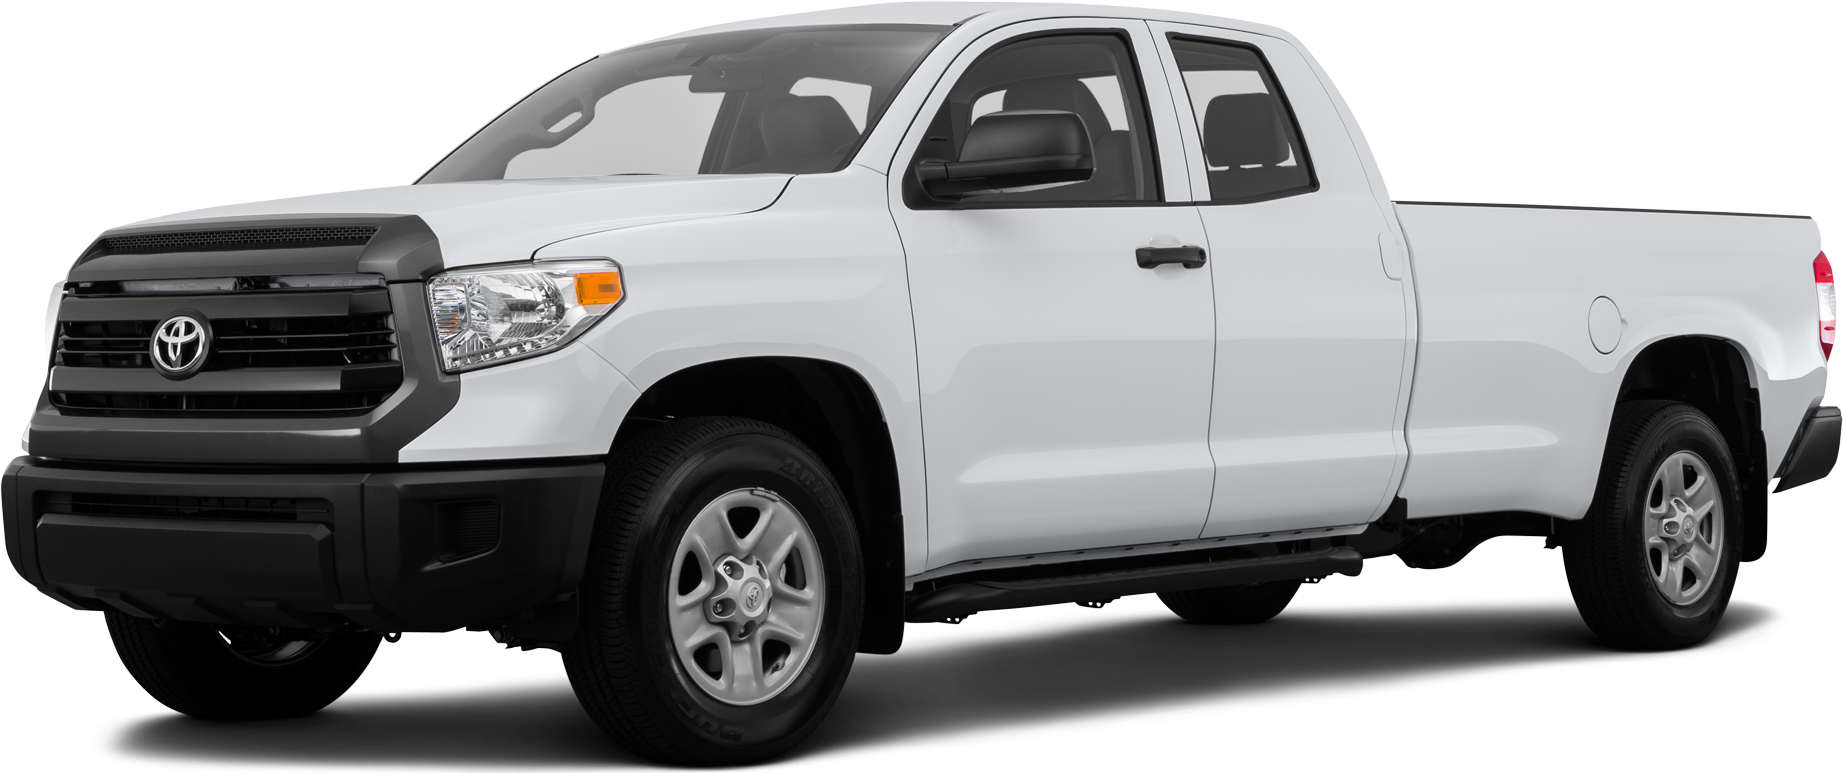 Used 2016 Toyota Tundra Values Cars For Sale Kelley Blue Book